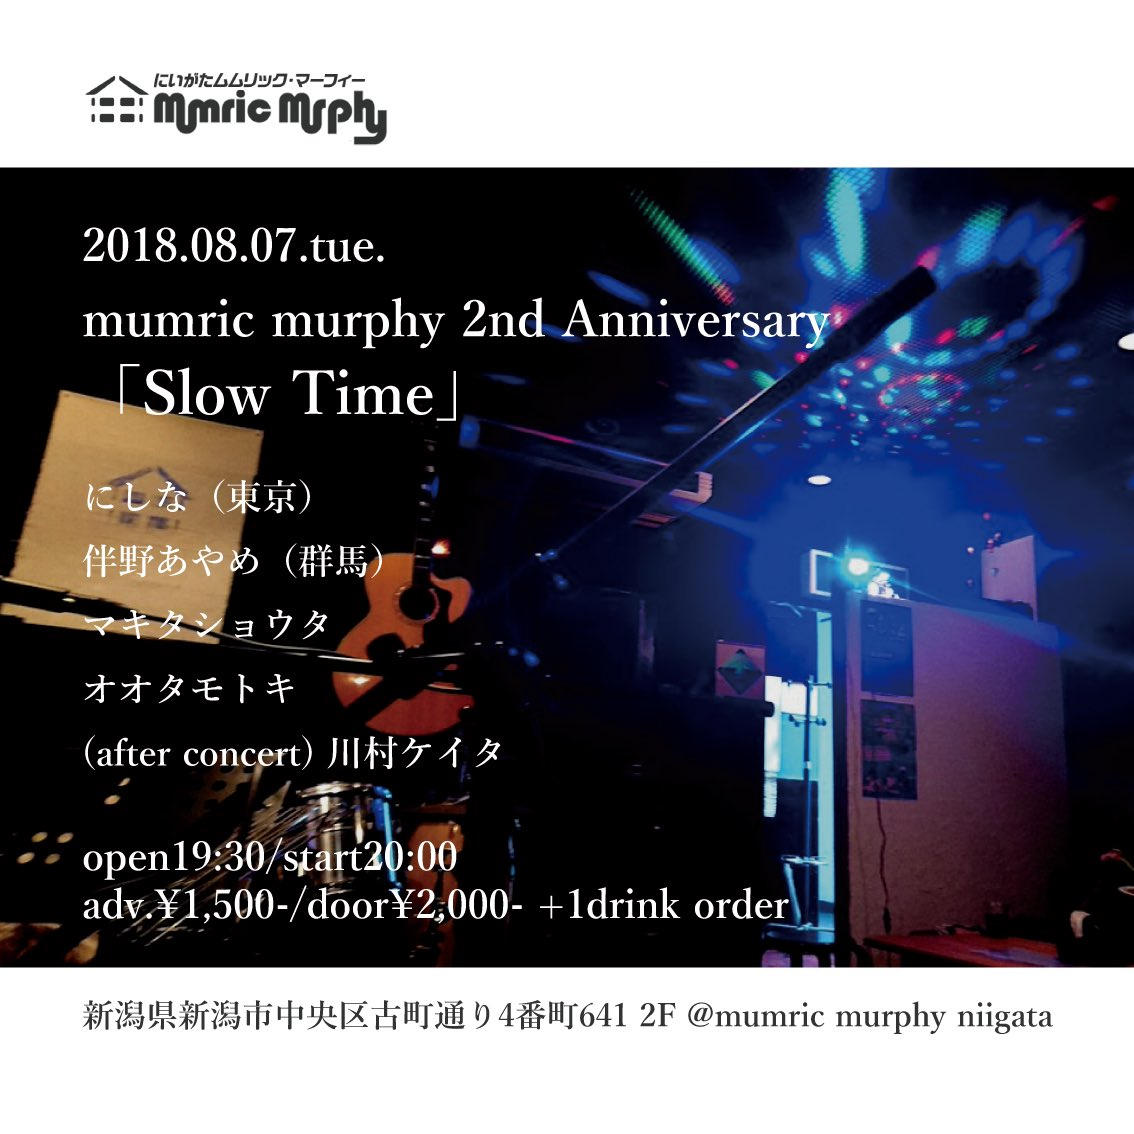 mumric  murphy 2nd Anniversary「Slow time」